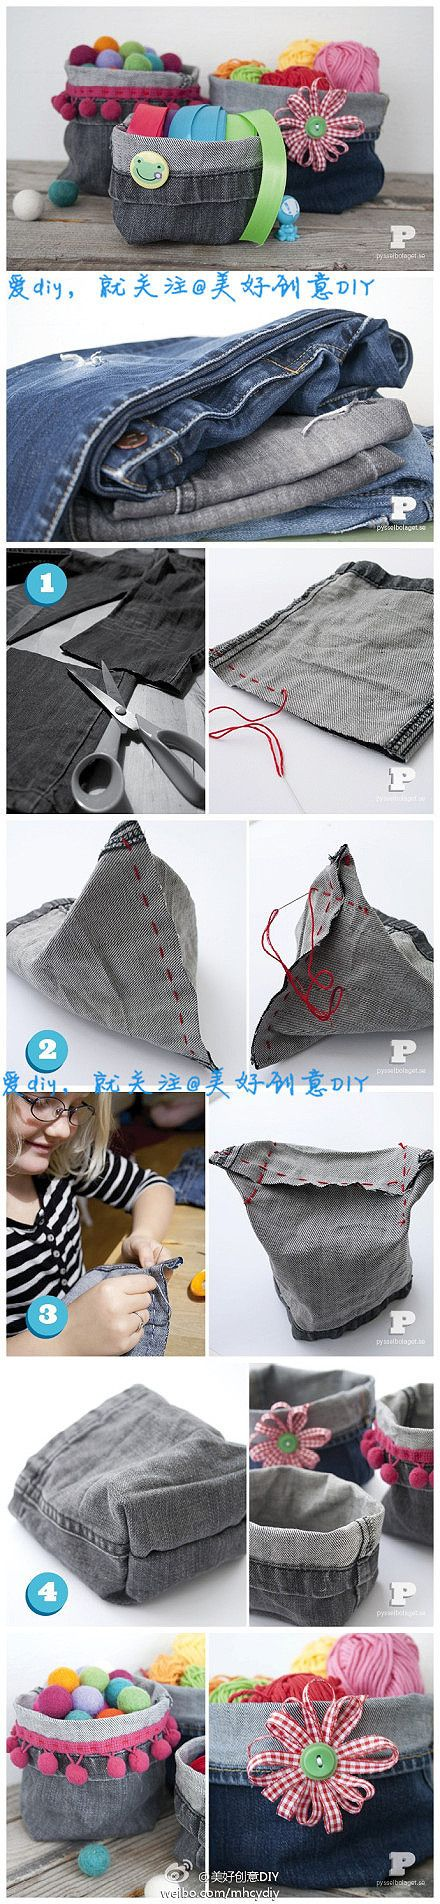 DIY Jean bag! Totally making one on a larger scale